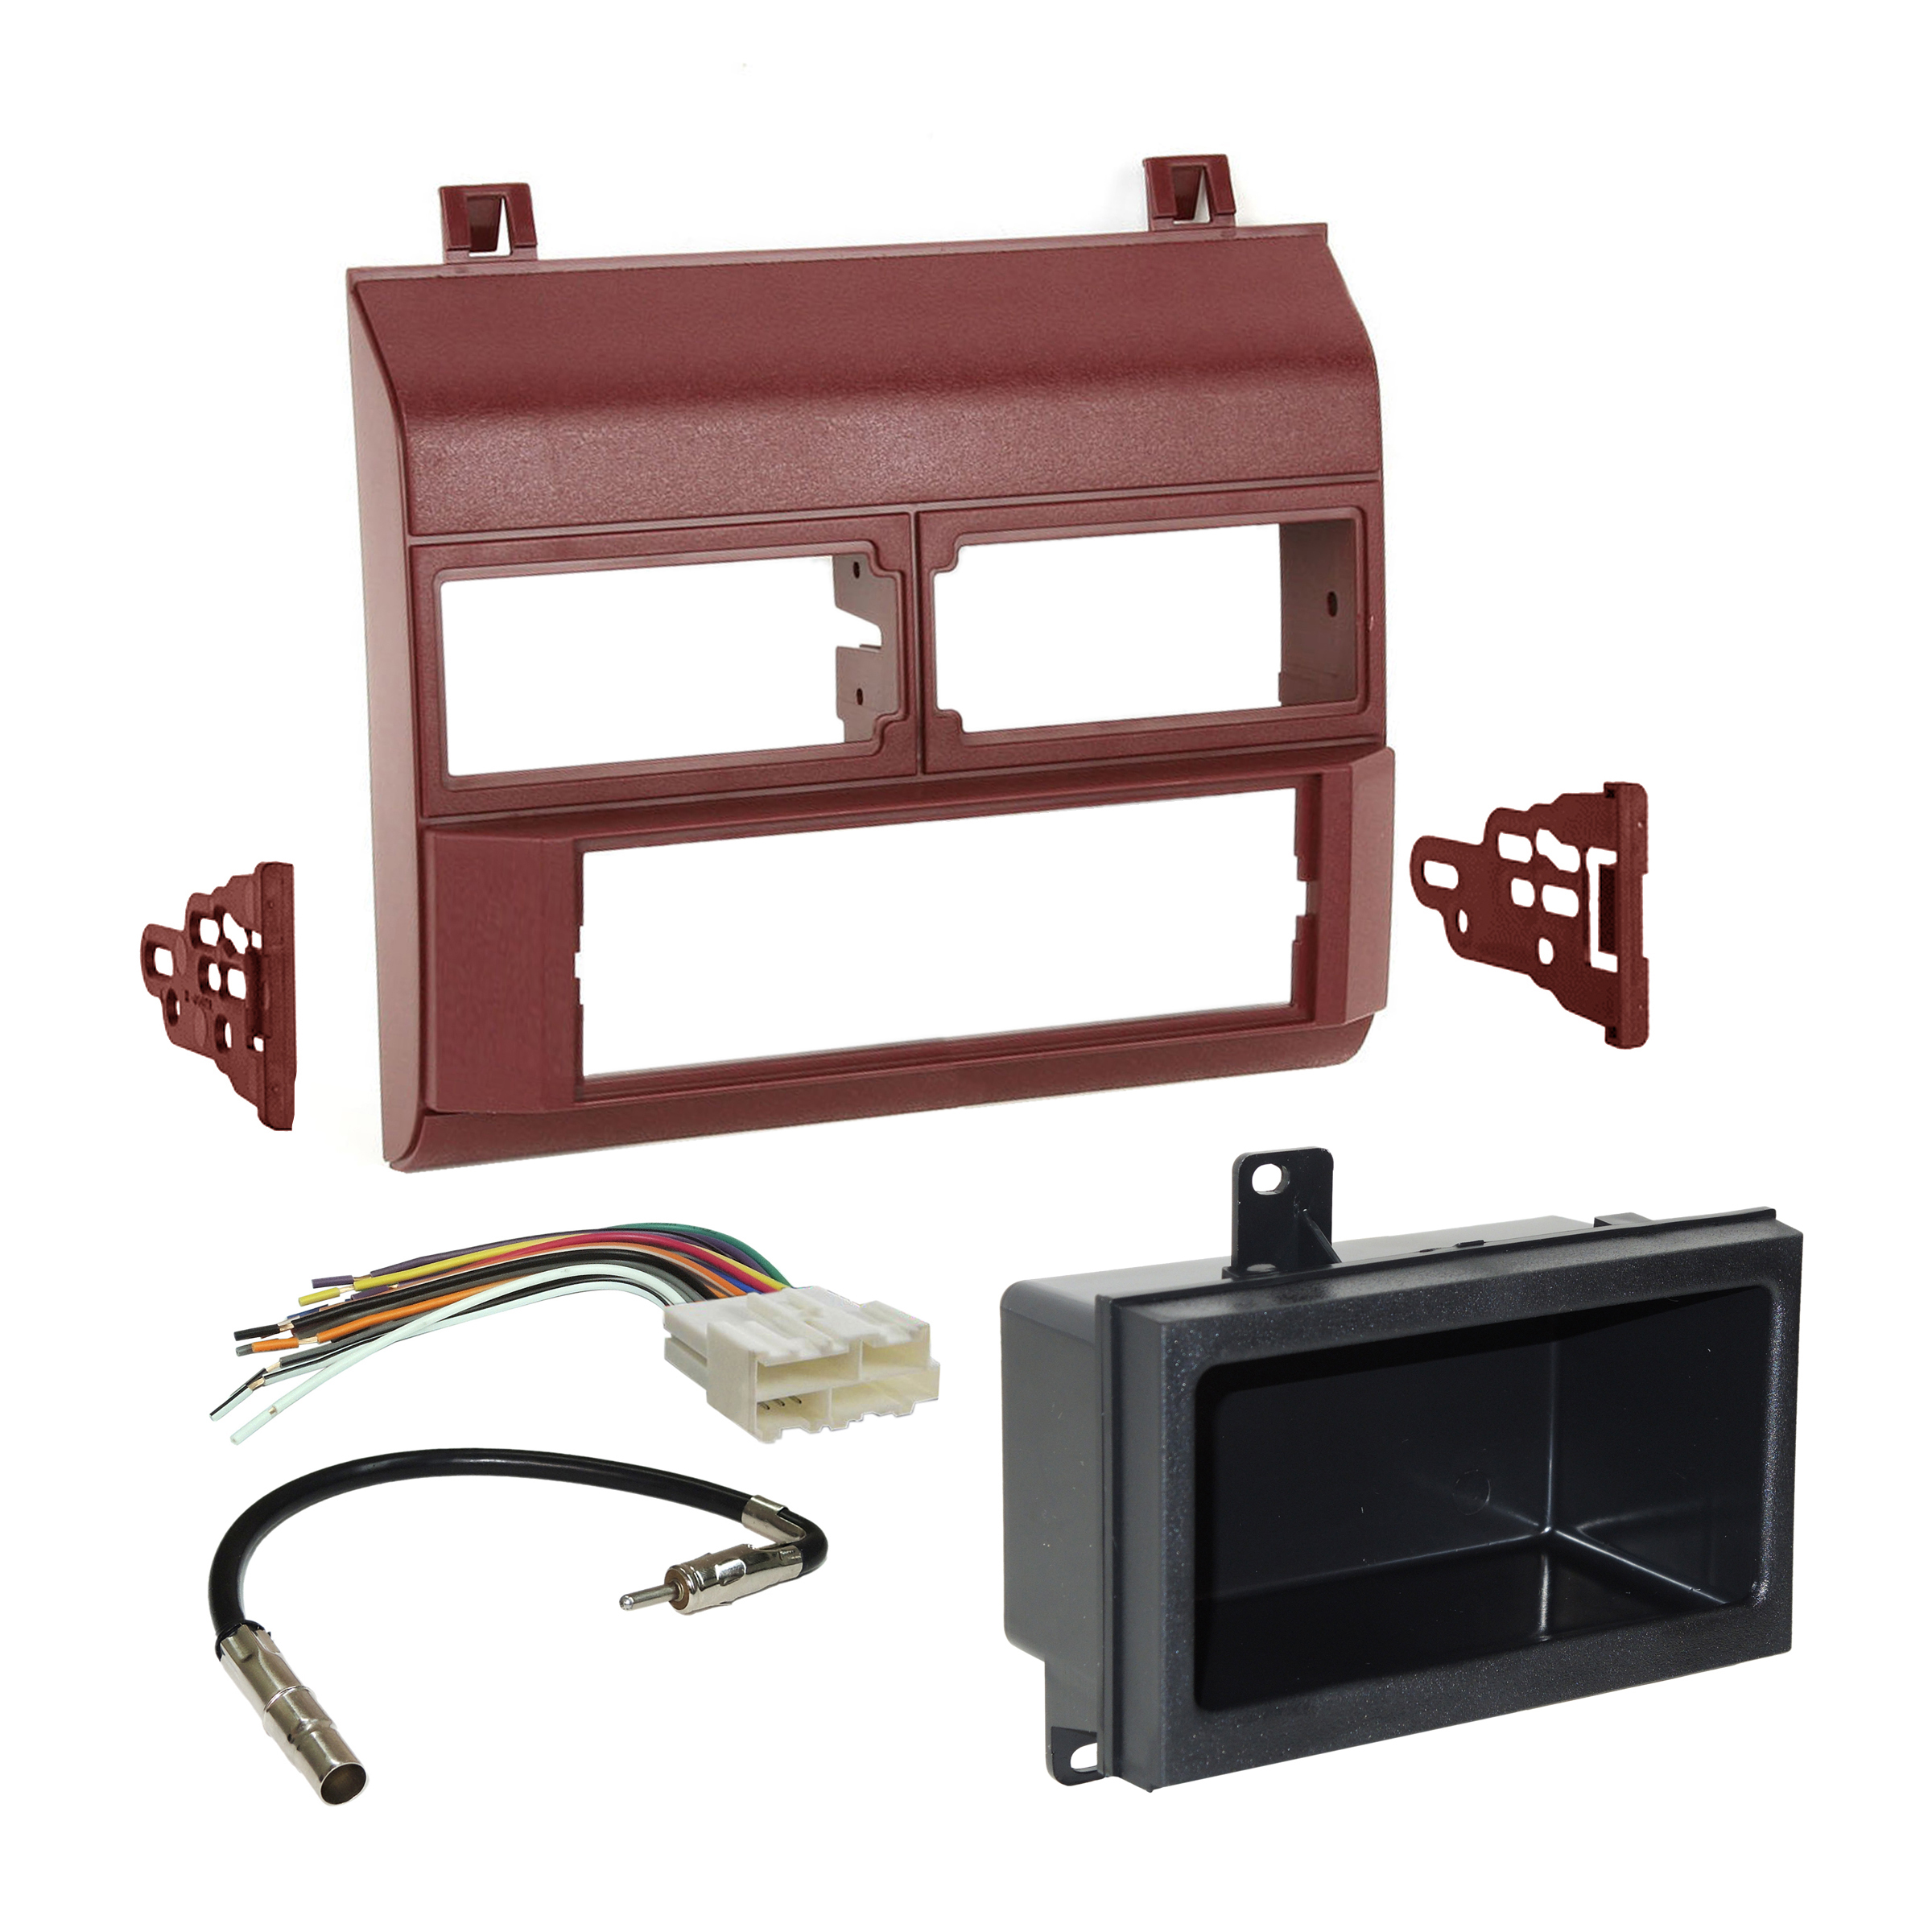 Metra Radio Stereo Burgundy Dash Kit Harness Antenna for 88-94 Chevy on pac wiring harness, scosche wiring harness, garmin wiring harness, rockford fosgate wiring harness, midland wiring harness, cobra wiring harness, yamaha wiring harness, car wiring harness, emerson wiring harness, stinger wiring harness, jbl wiring harness, eclipse wiring harness, lowrance wiring harness, pyle wiring harness, bose wiring harness, chevy wiring harness, automotive wiring harness, apc wiring harness, tripp lite wiring harness, mitsubishi wiring harness,